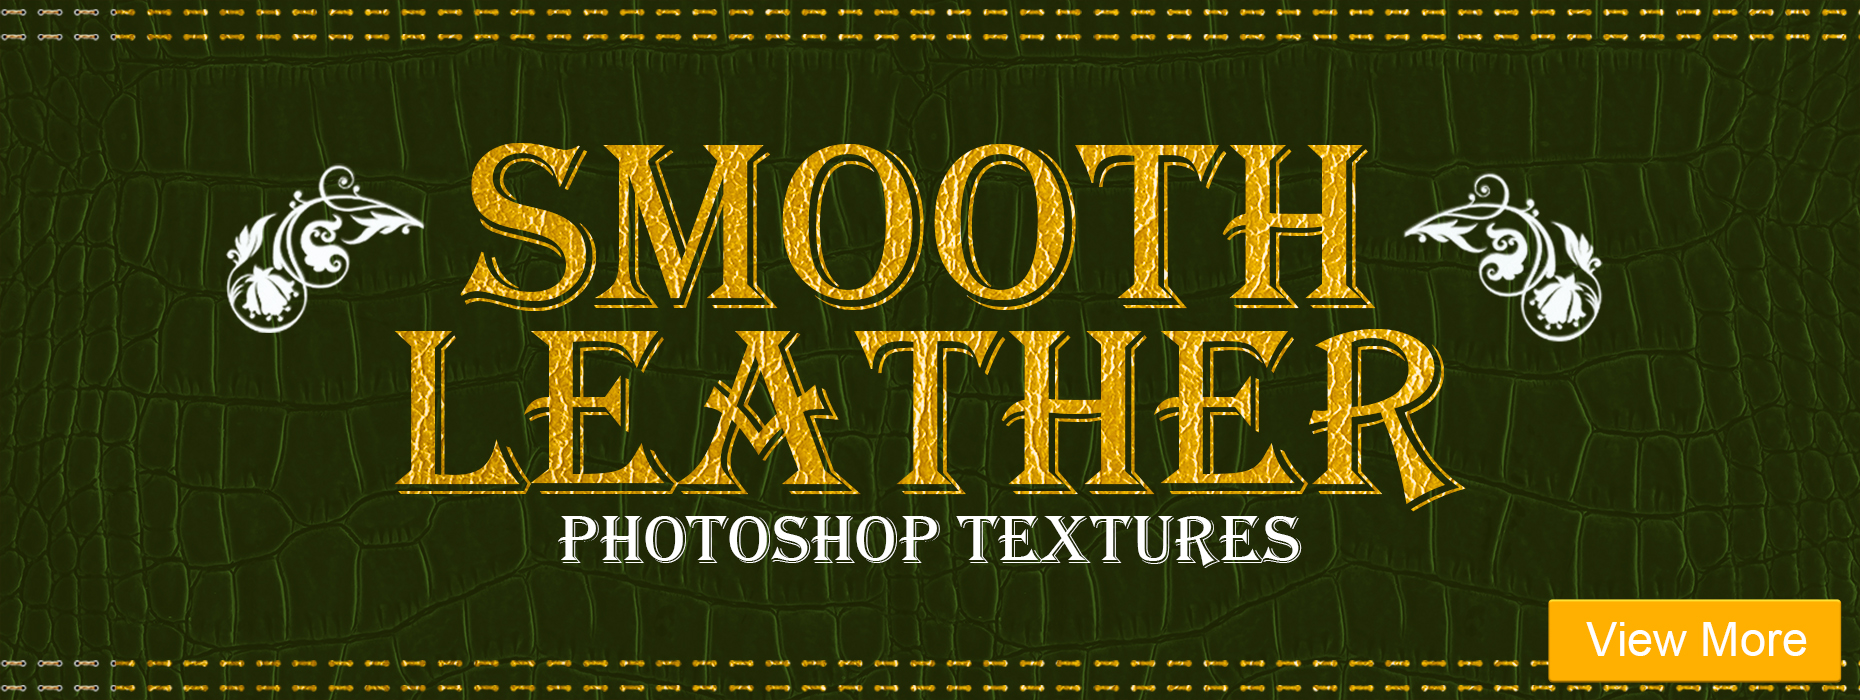 free wood texture photoshop vintage portrait lightroom presets banner girl